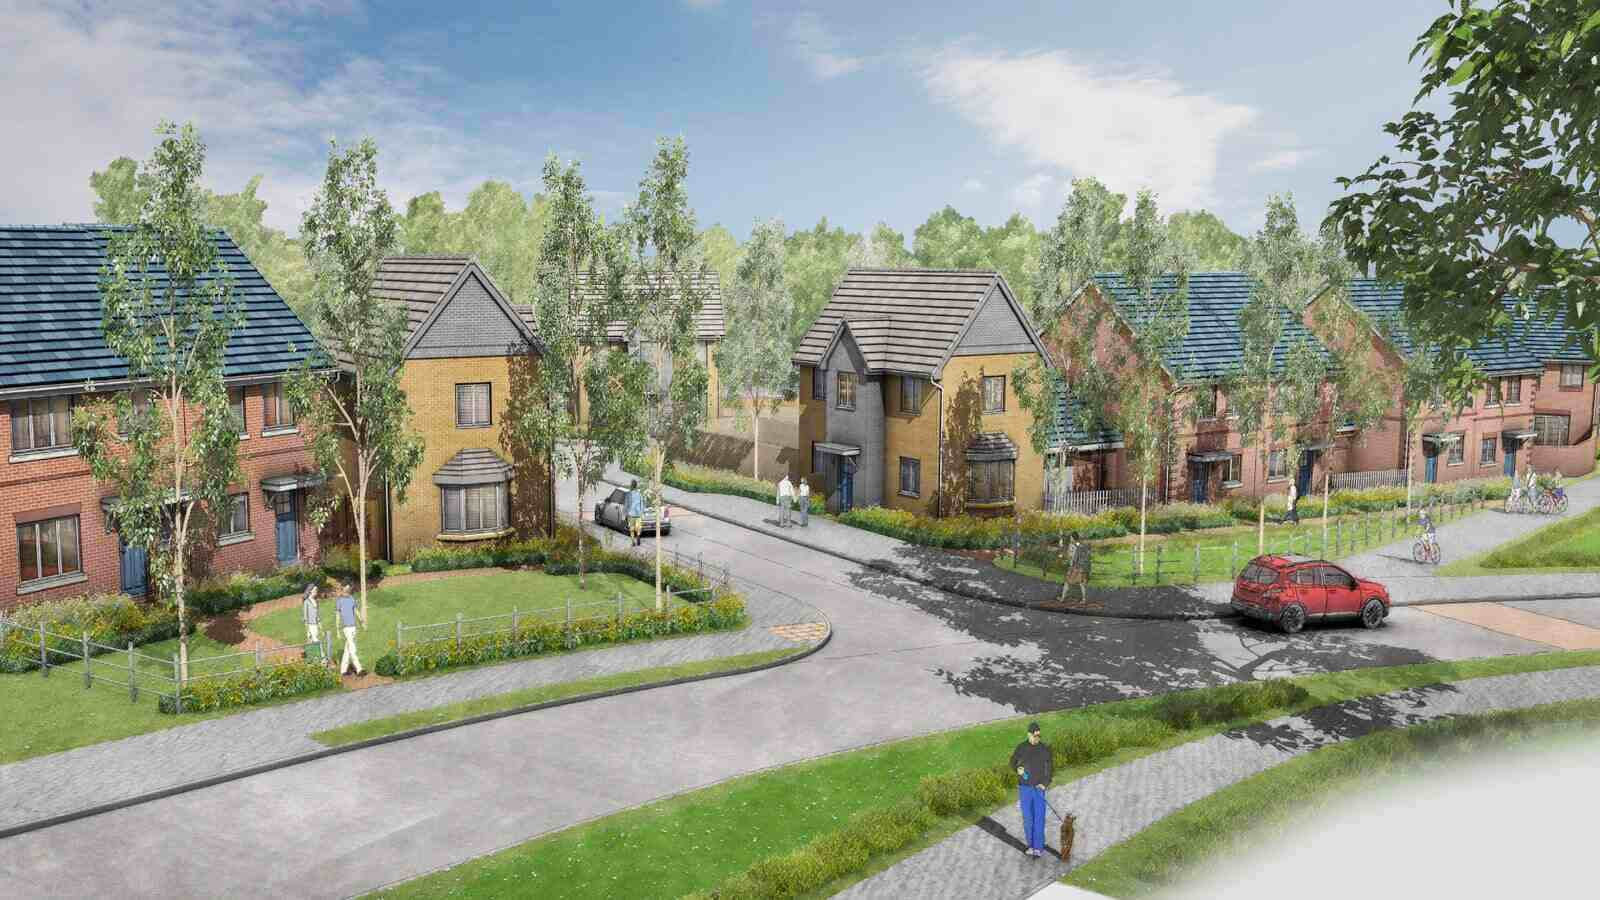 An artist's impression of Buckthorn Grange, Ewell.